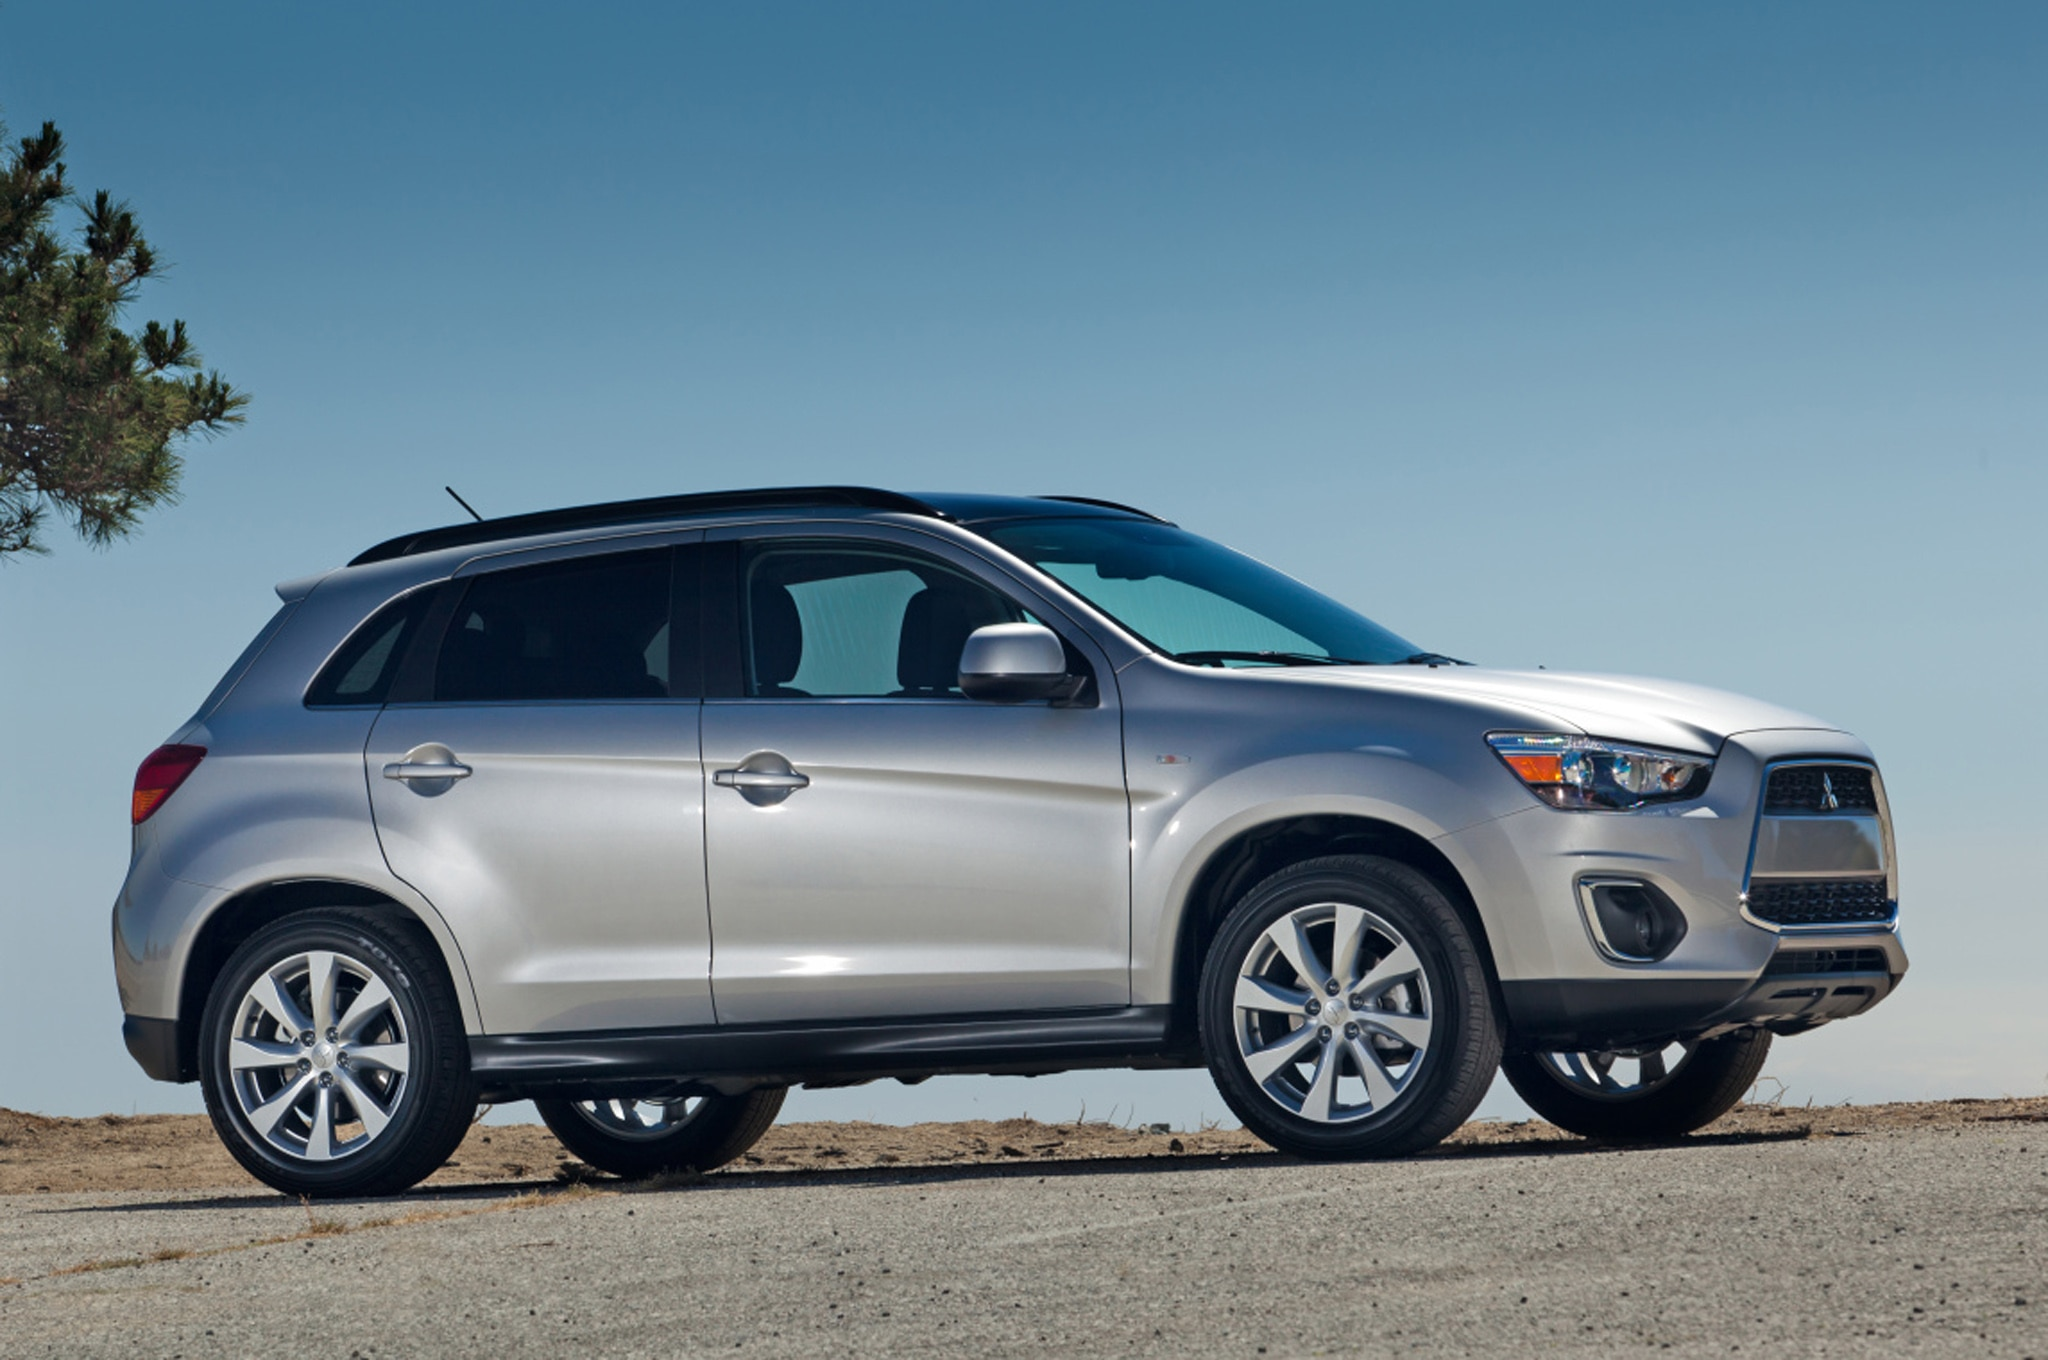 2013 Mitsubishi Outlander Sport Side View1